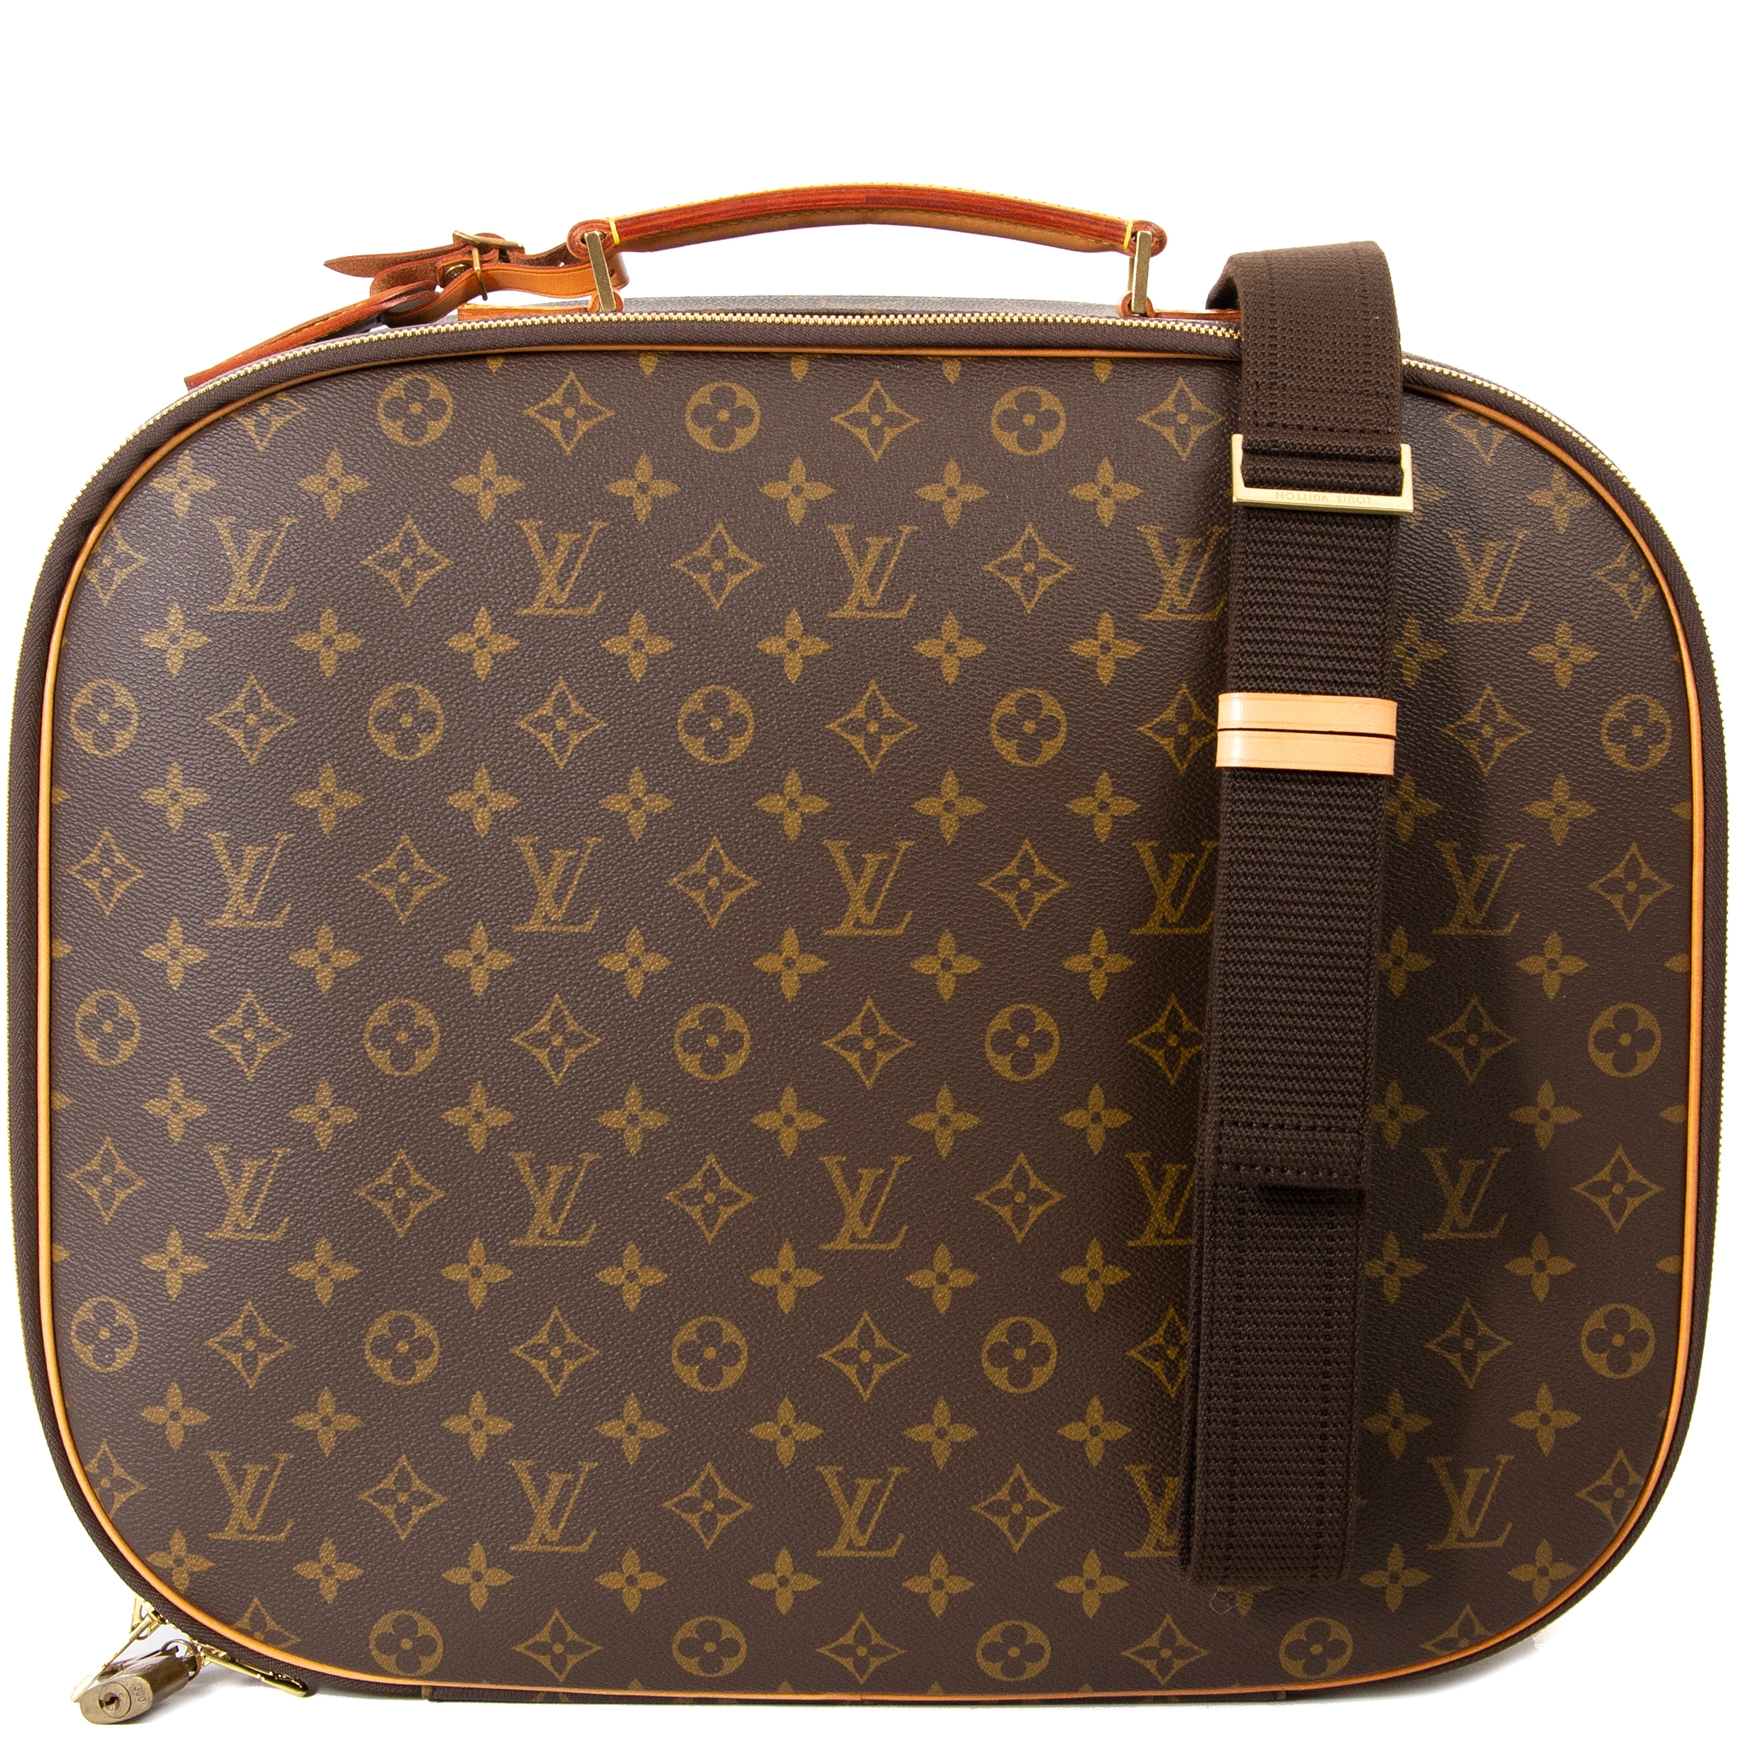 d2f88046e64a ... Buy your authentic Louis Vuitton Monogram Travel Case for the best  price at Labellov secondhand luxury